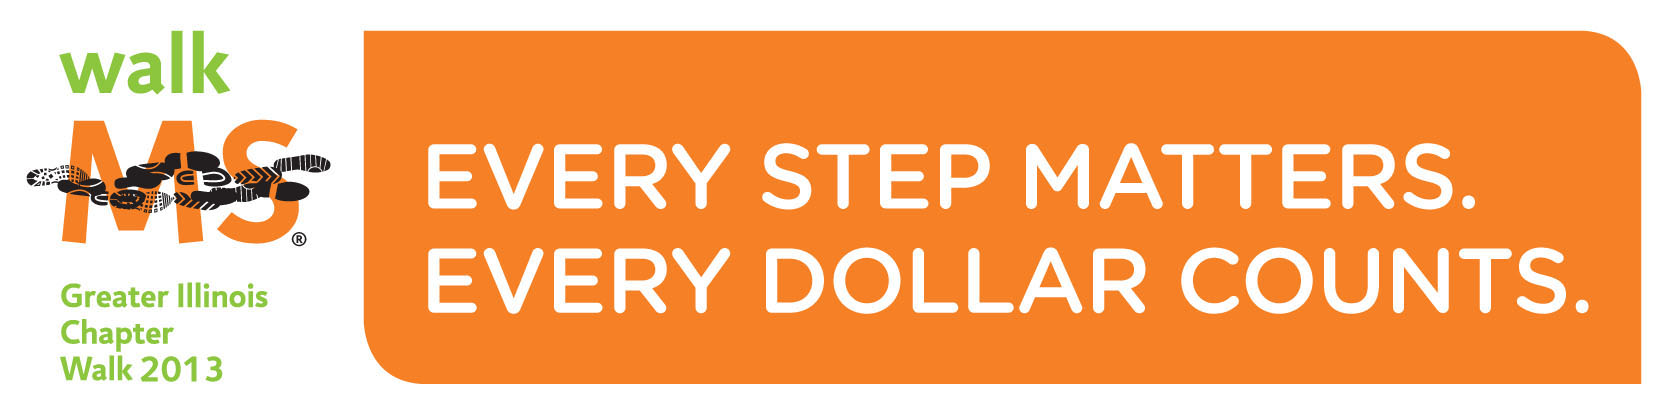 Every Step Matters. Every Dollar Counts.